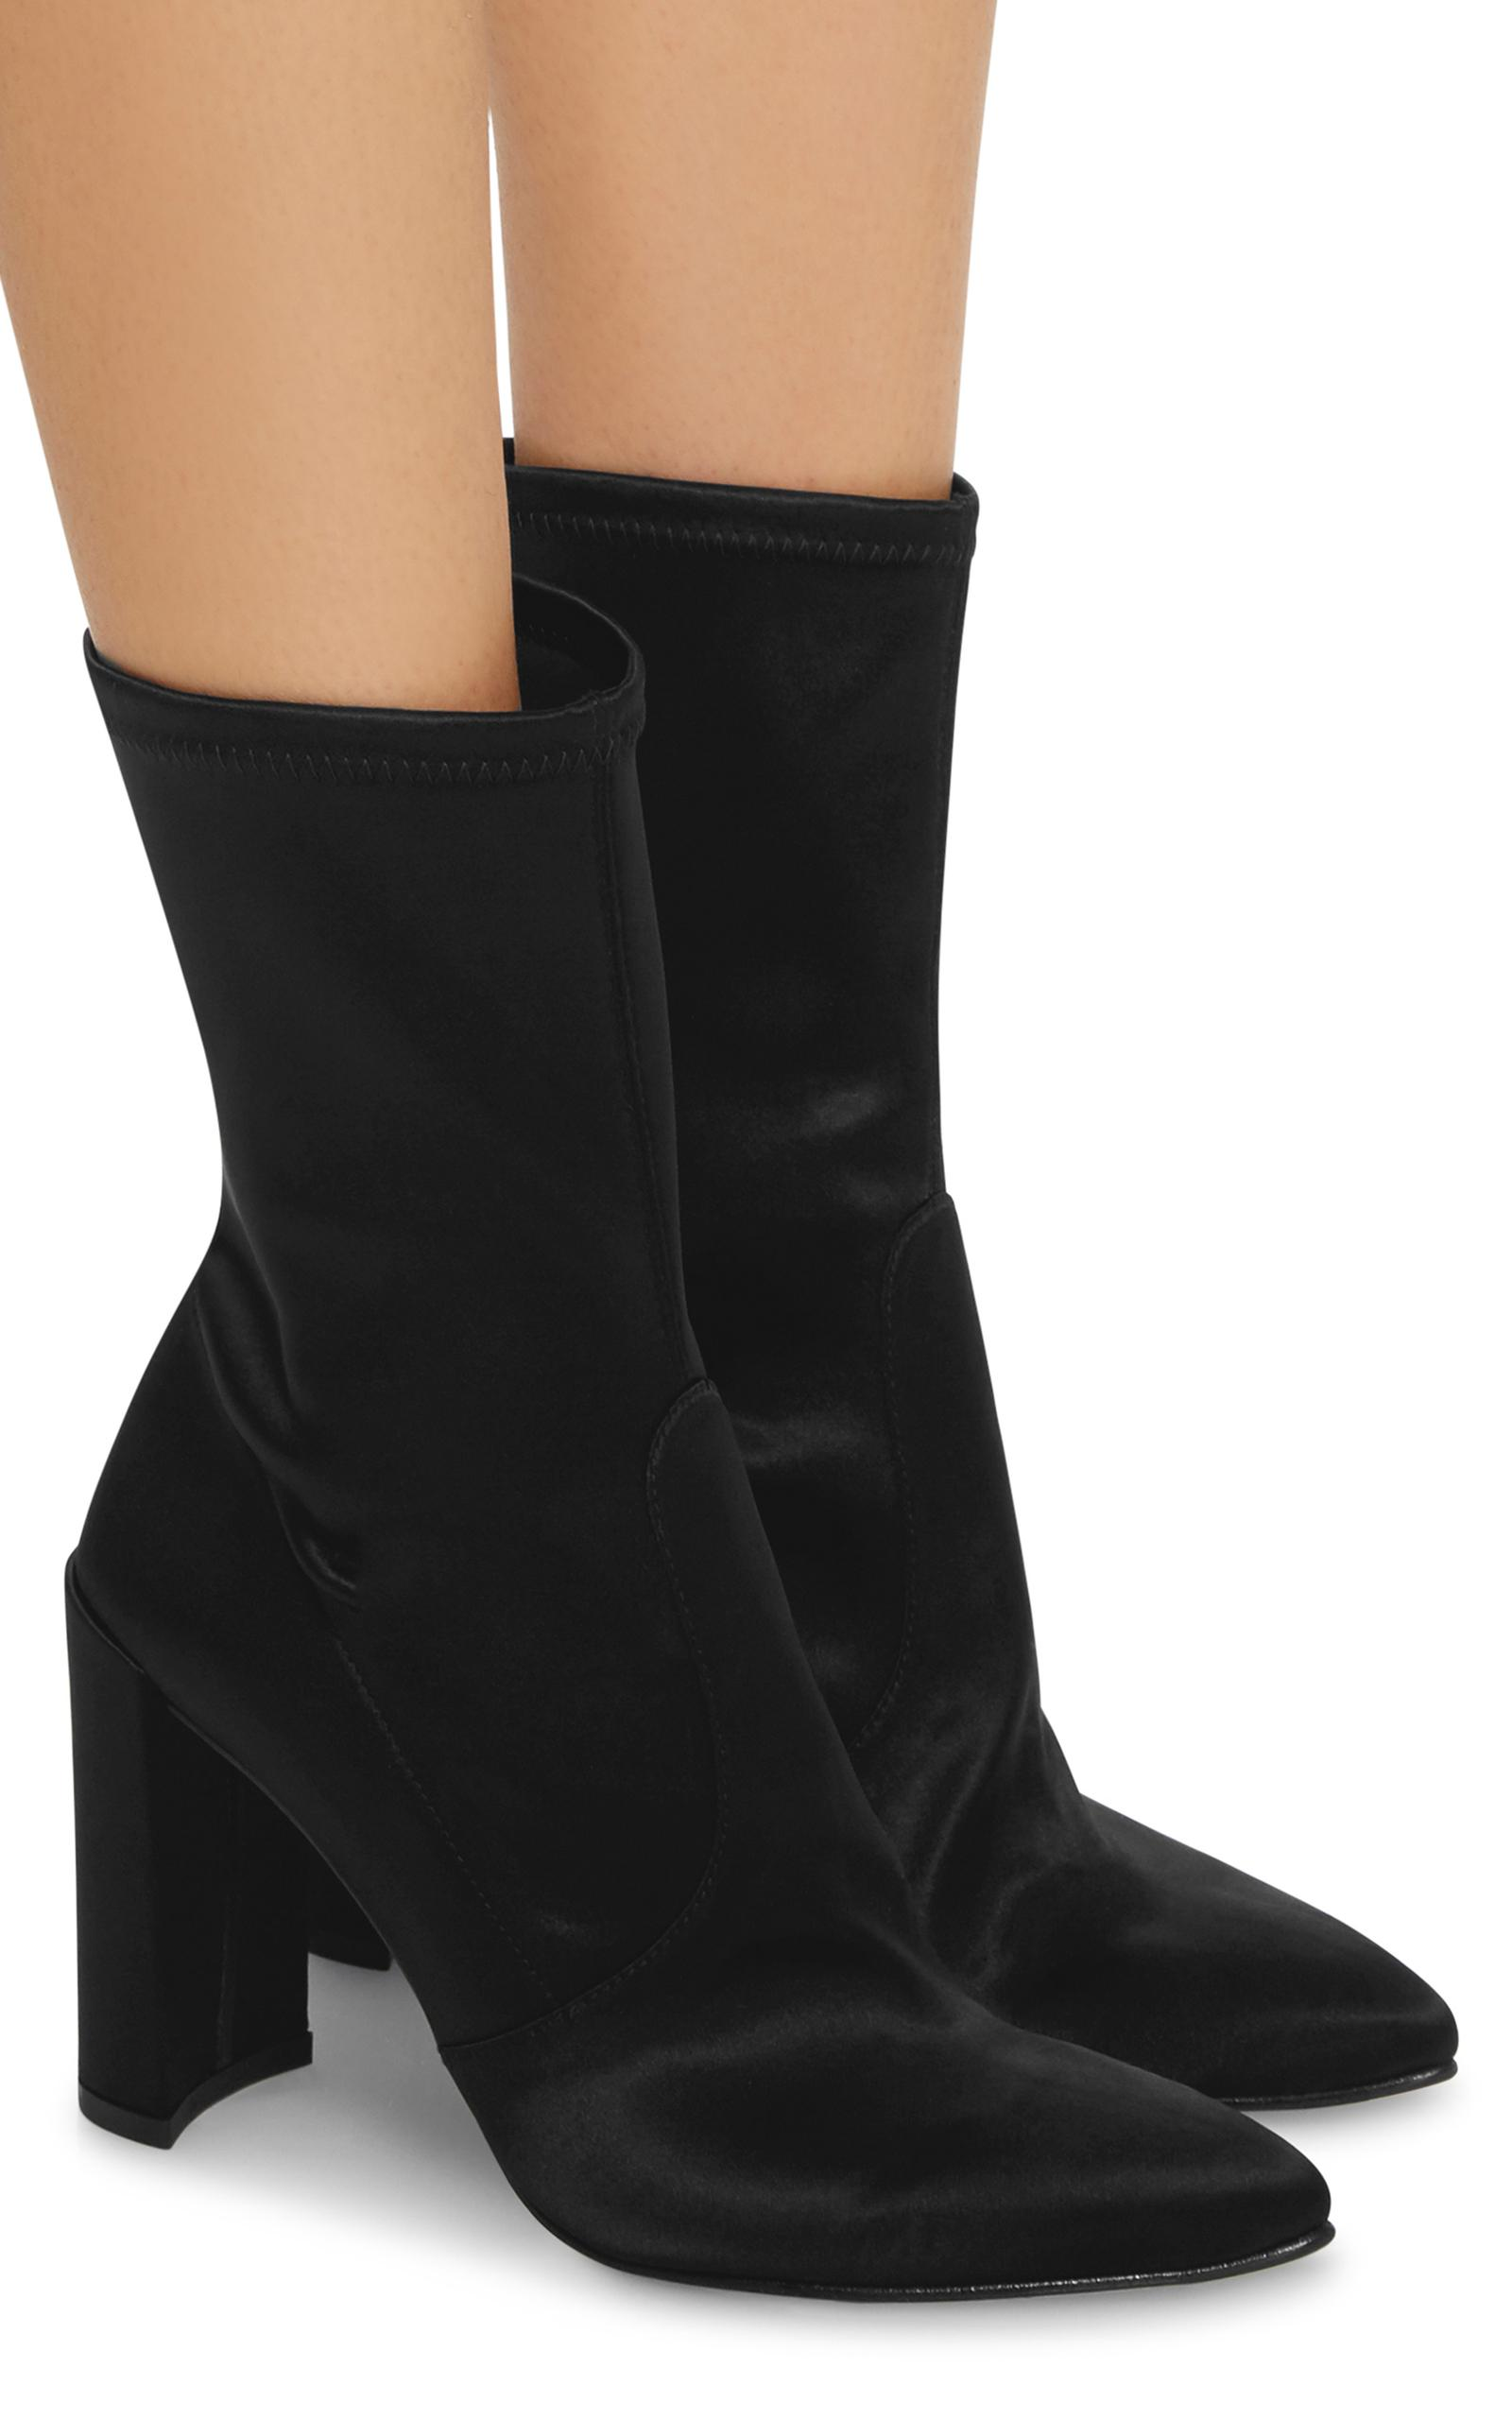 Stuart Weitzman Clinger Stretch Satin Ankle Boots In Black